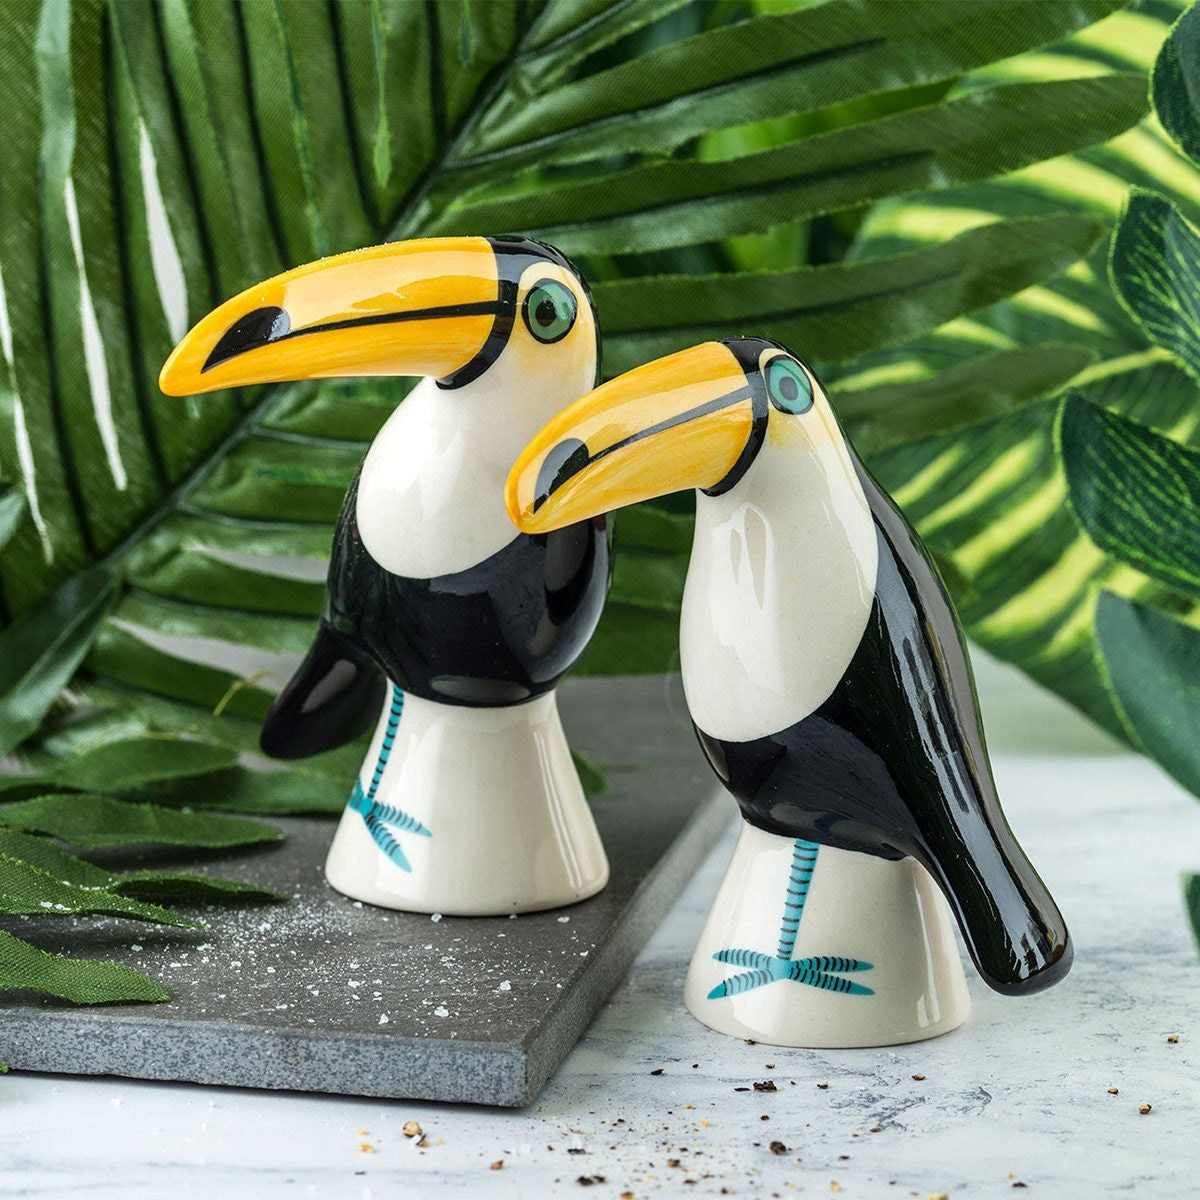 Toucan salt and pepper shakers from Etsy